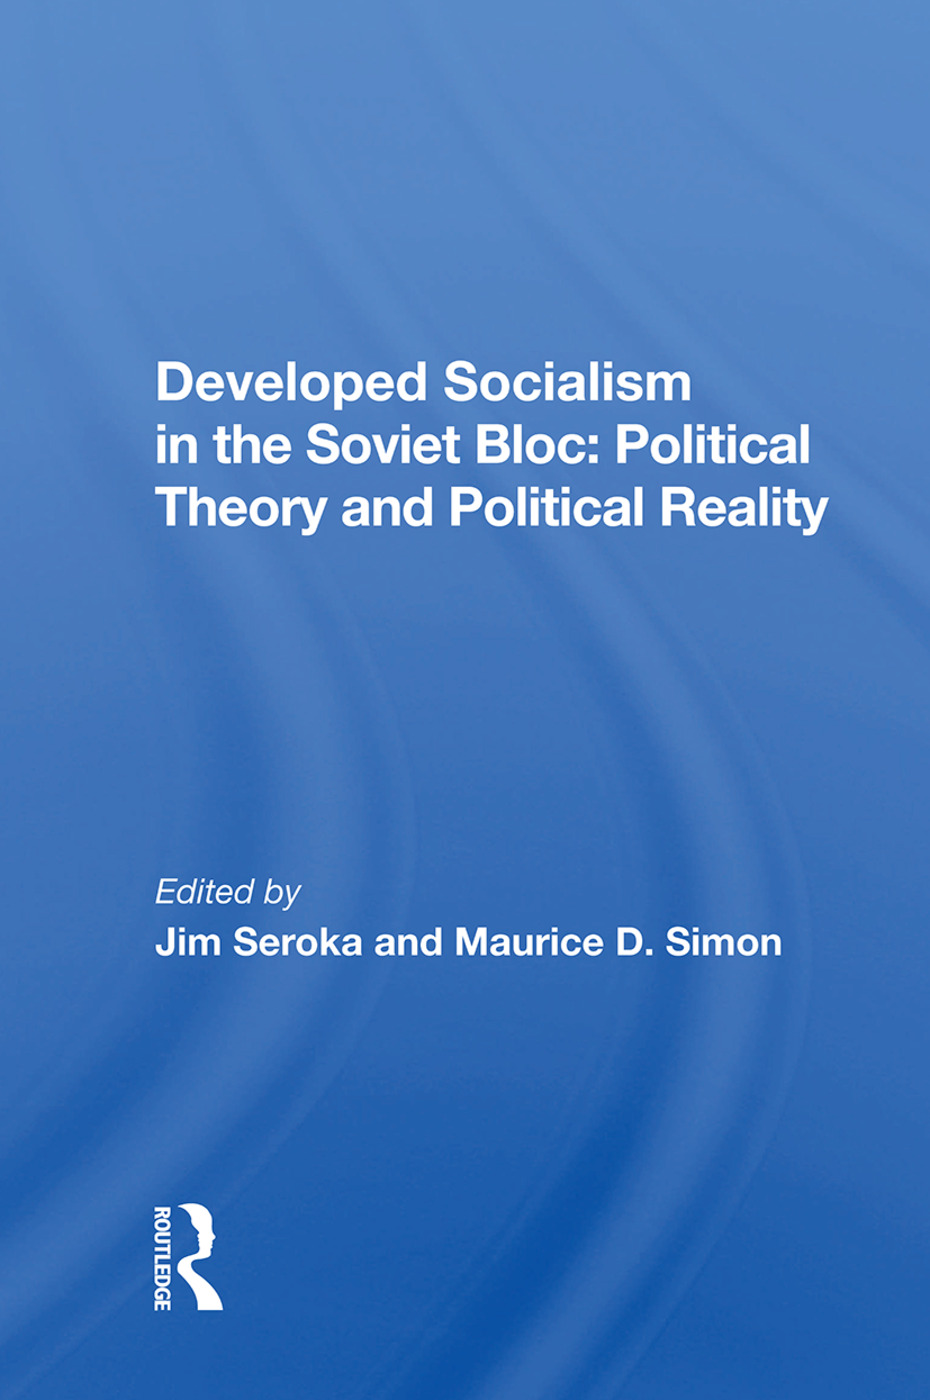 Developed Socialism In The Soviet Bloc: Political Theory Vs. Political Reality book cover